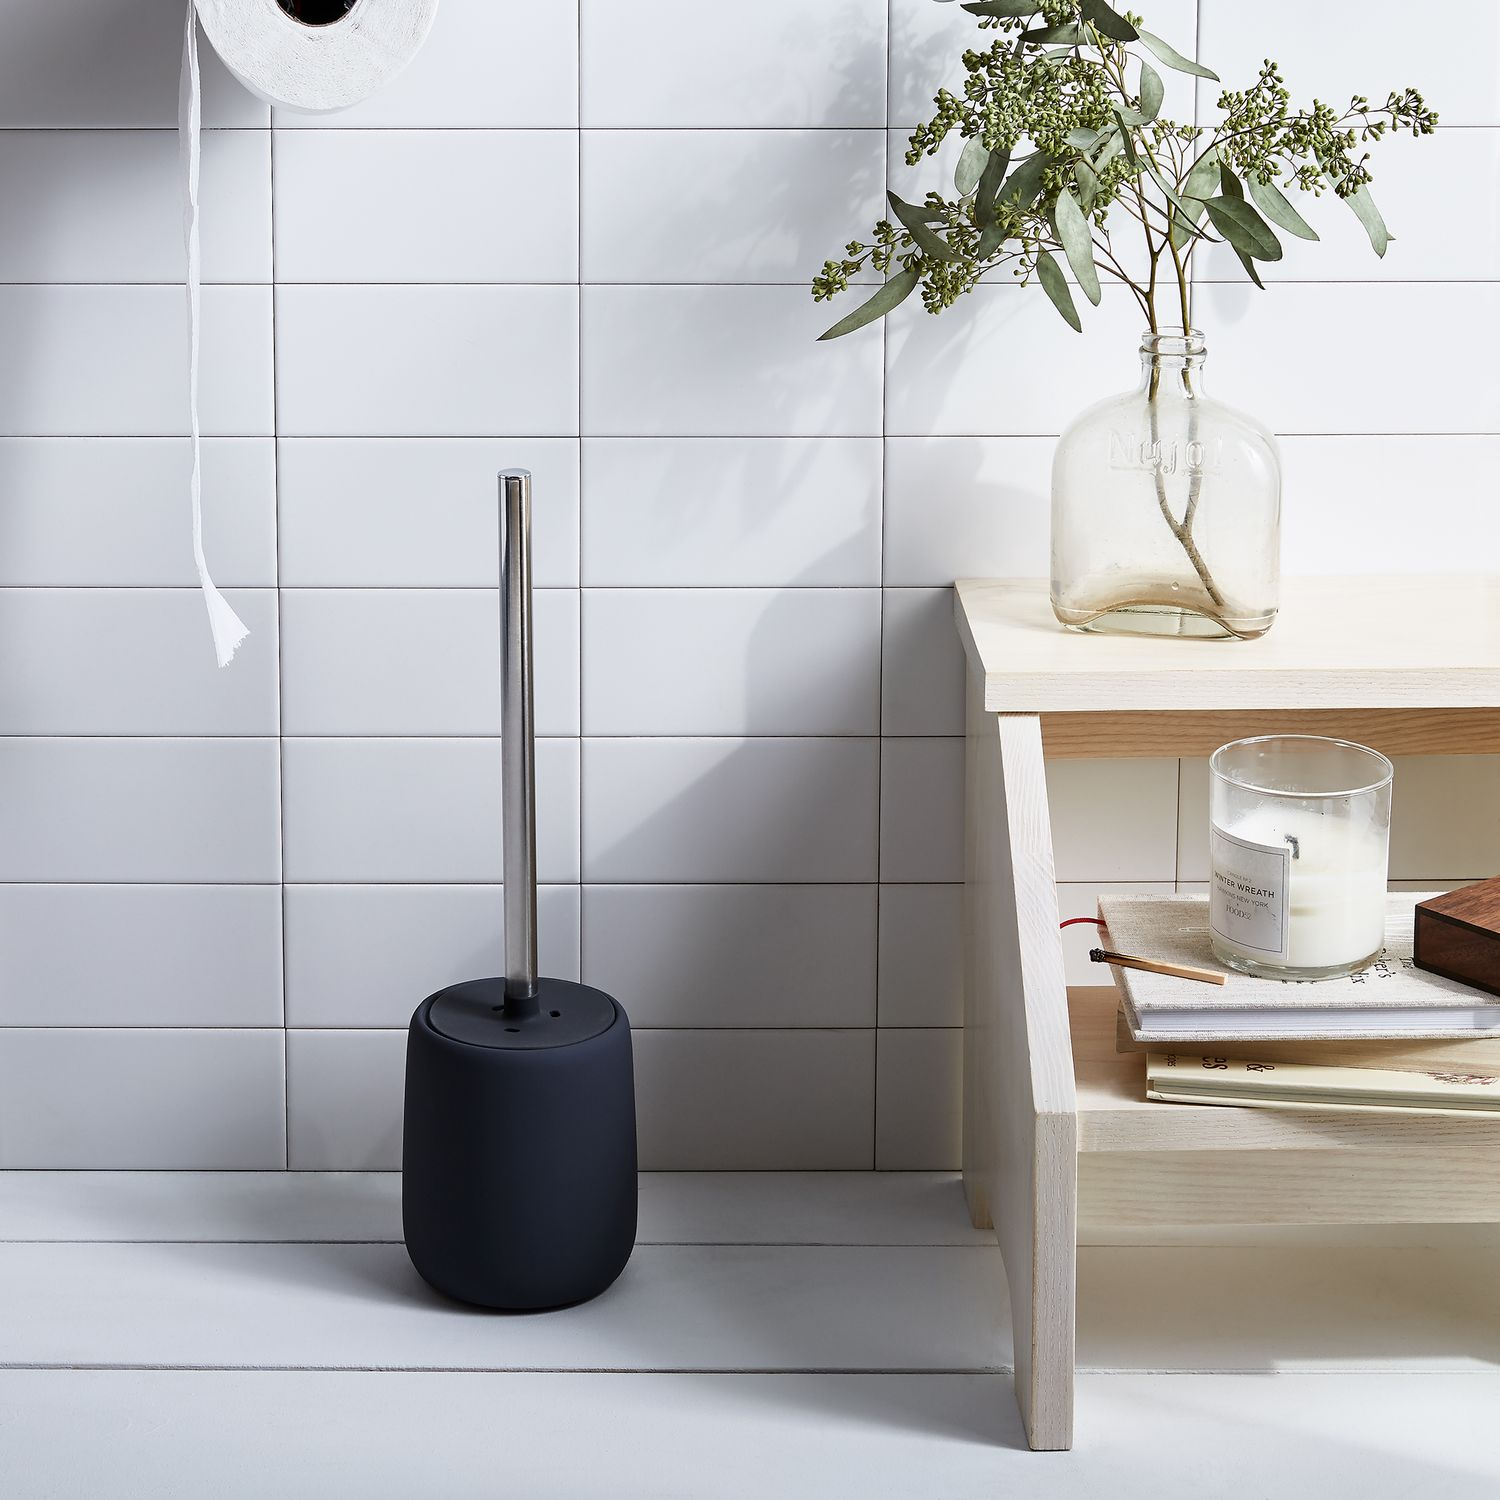 Blomus Toilet Brush Bathroom Accessories With Exclusive Color On Food52